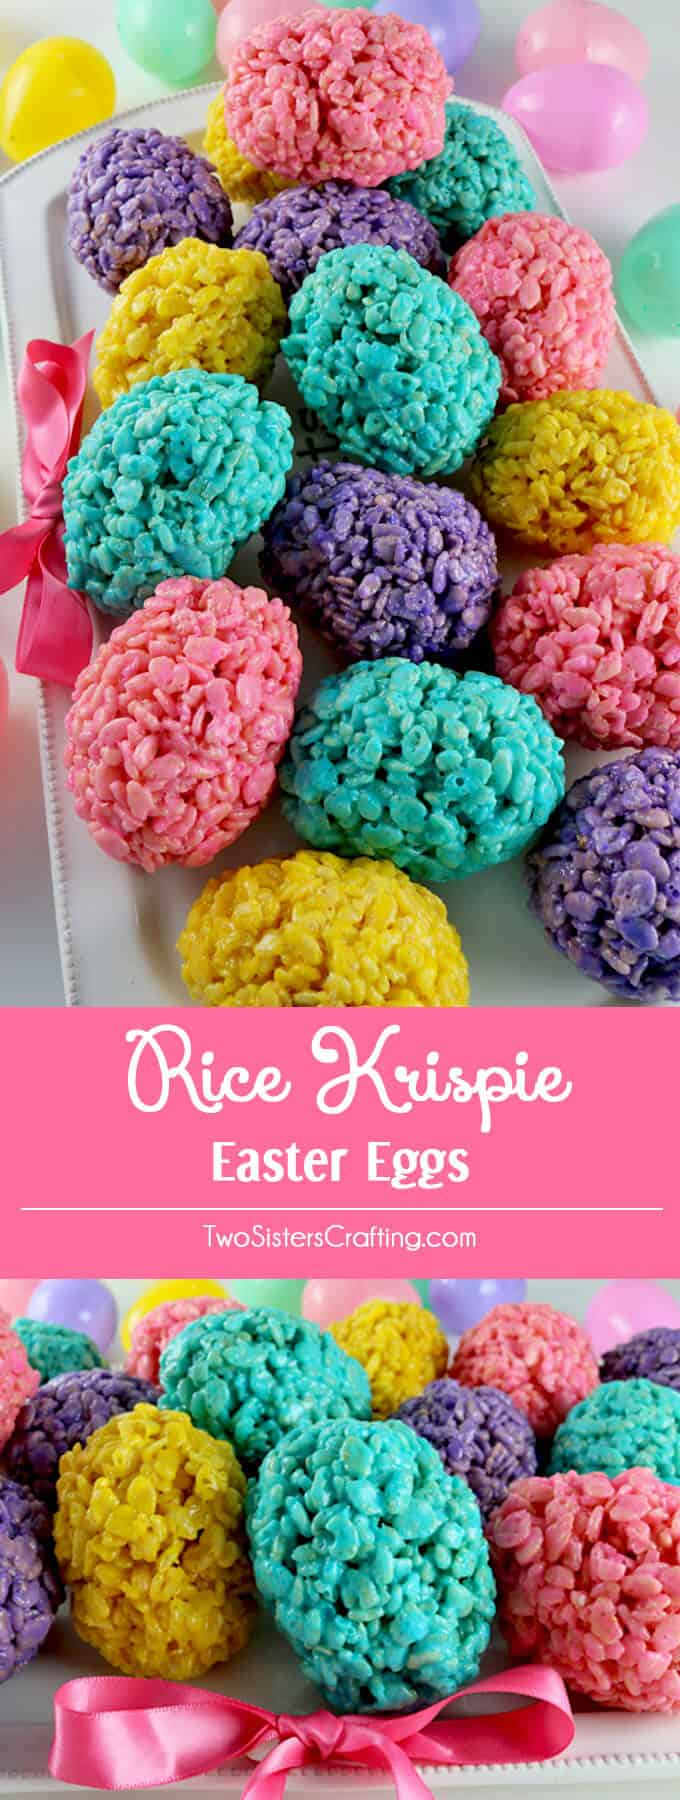 rice krispie Easter eggs + 25 Easter Crafts for Kids - Fun-filled Easter activities for you and your child to do together!